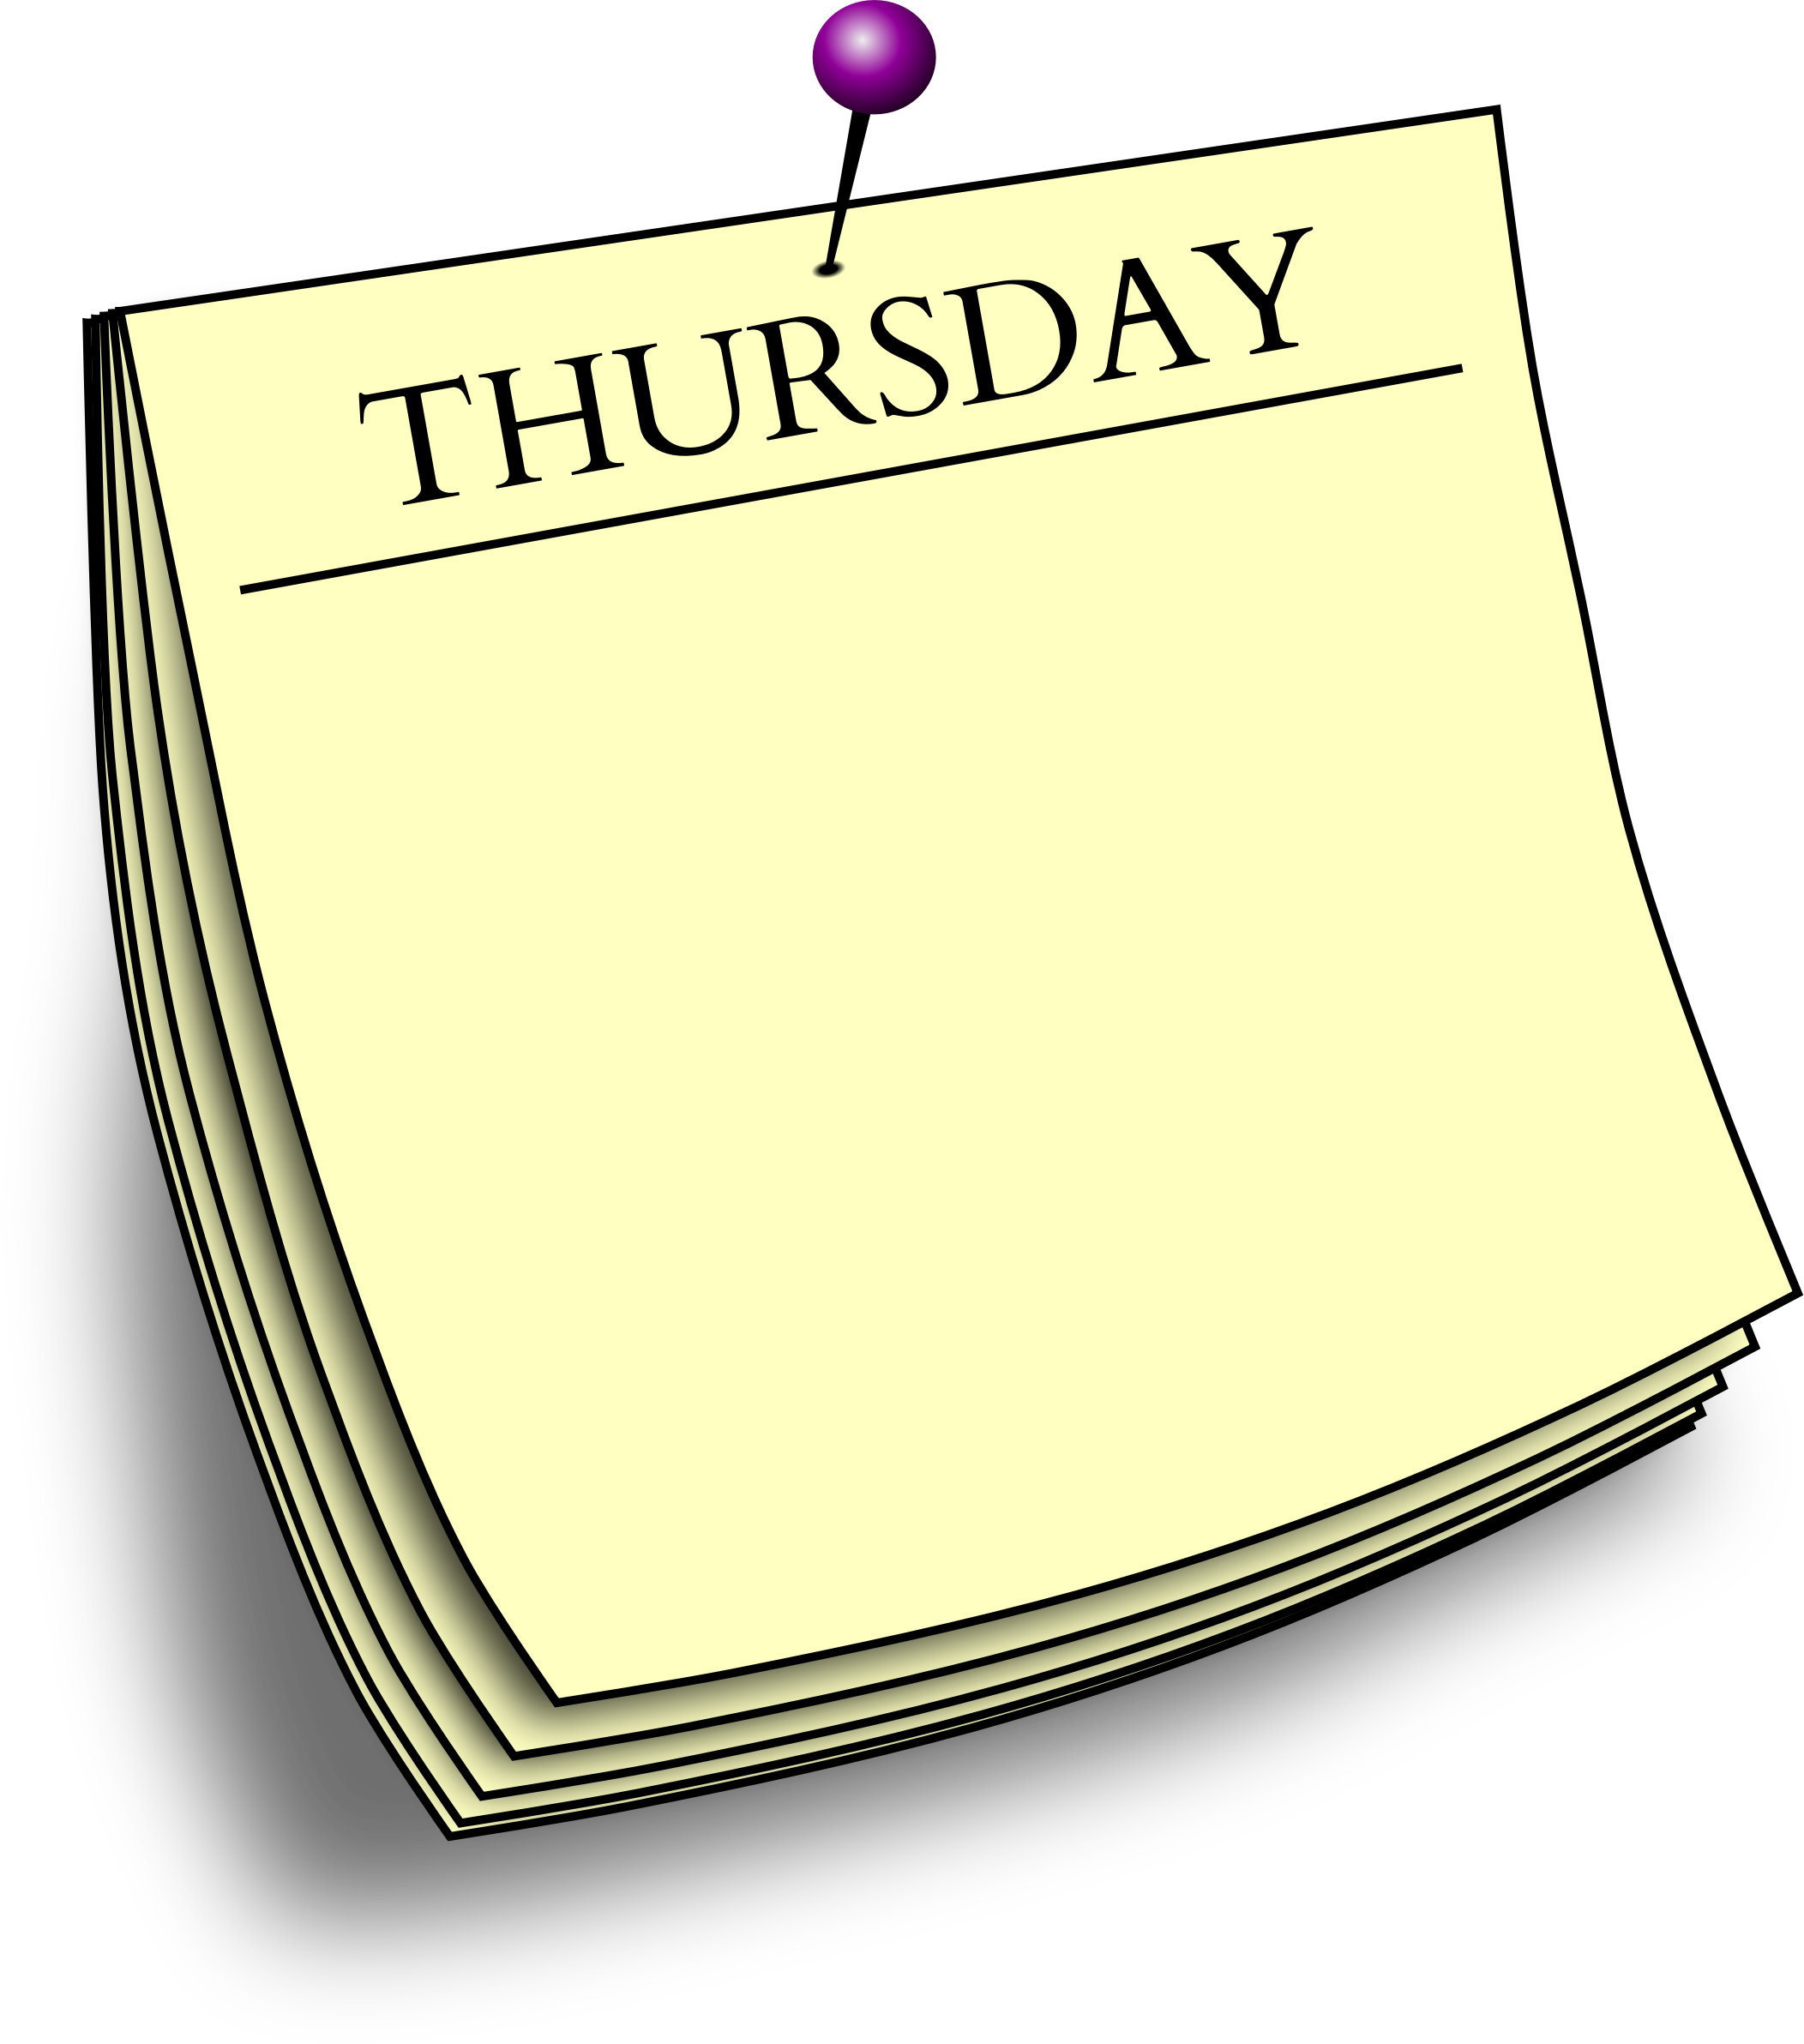 graphic library Daily note big image. Thursday clipart